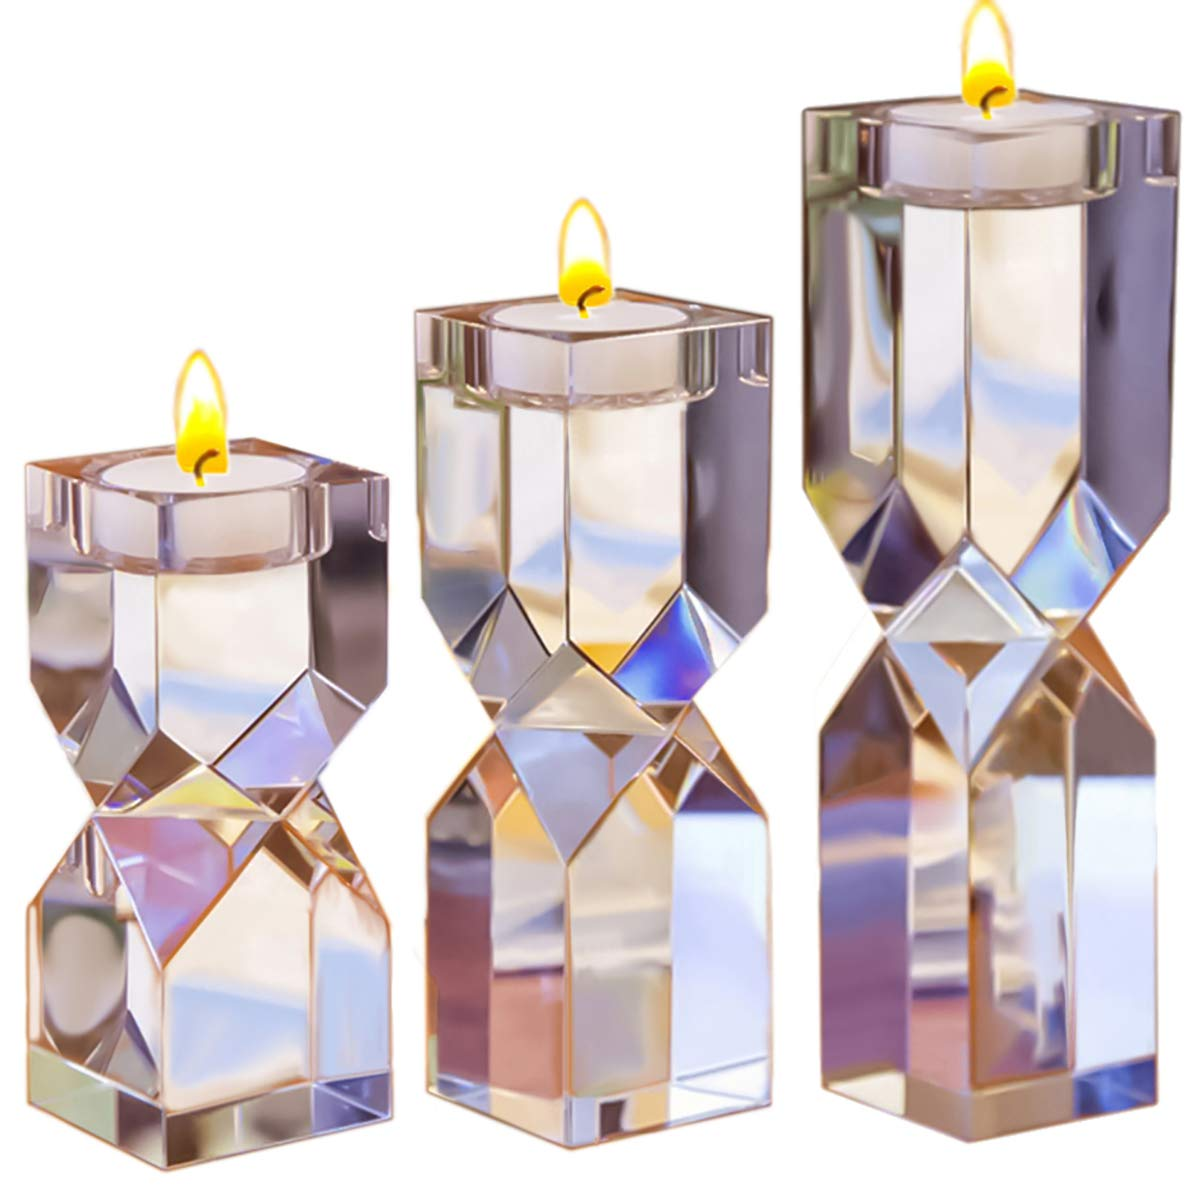 Le Sens Amazing Home Large Crystal Candle Holders Set of 3, 4.6/6.2/7.7 inches Height, Elegant Heavy Solid Square Diamond Cut Tealight Holders Sets, Centerpieces for Home Decor and Wedding by Le Sens Amazing Home